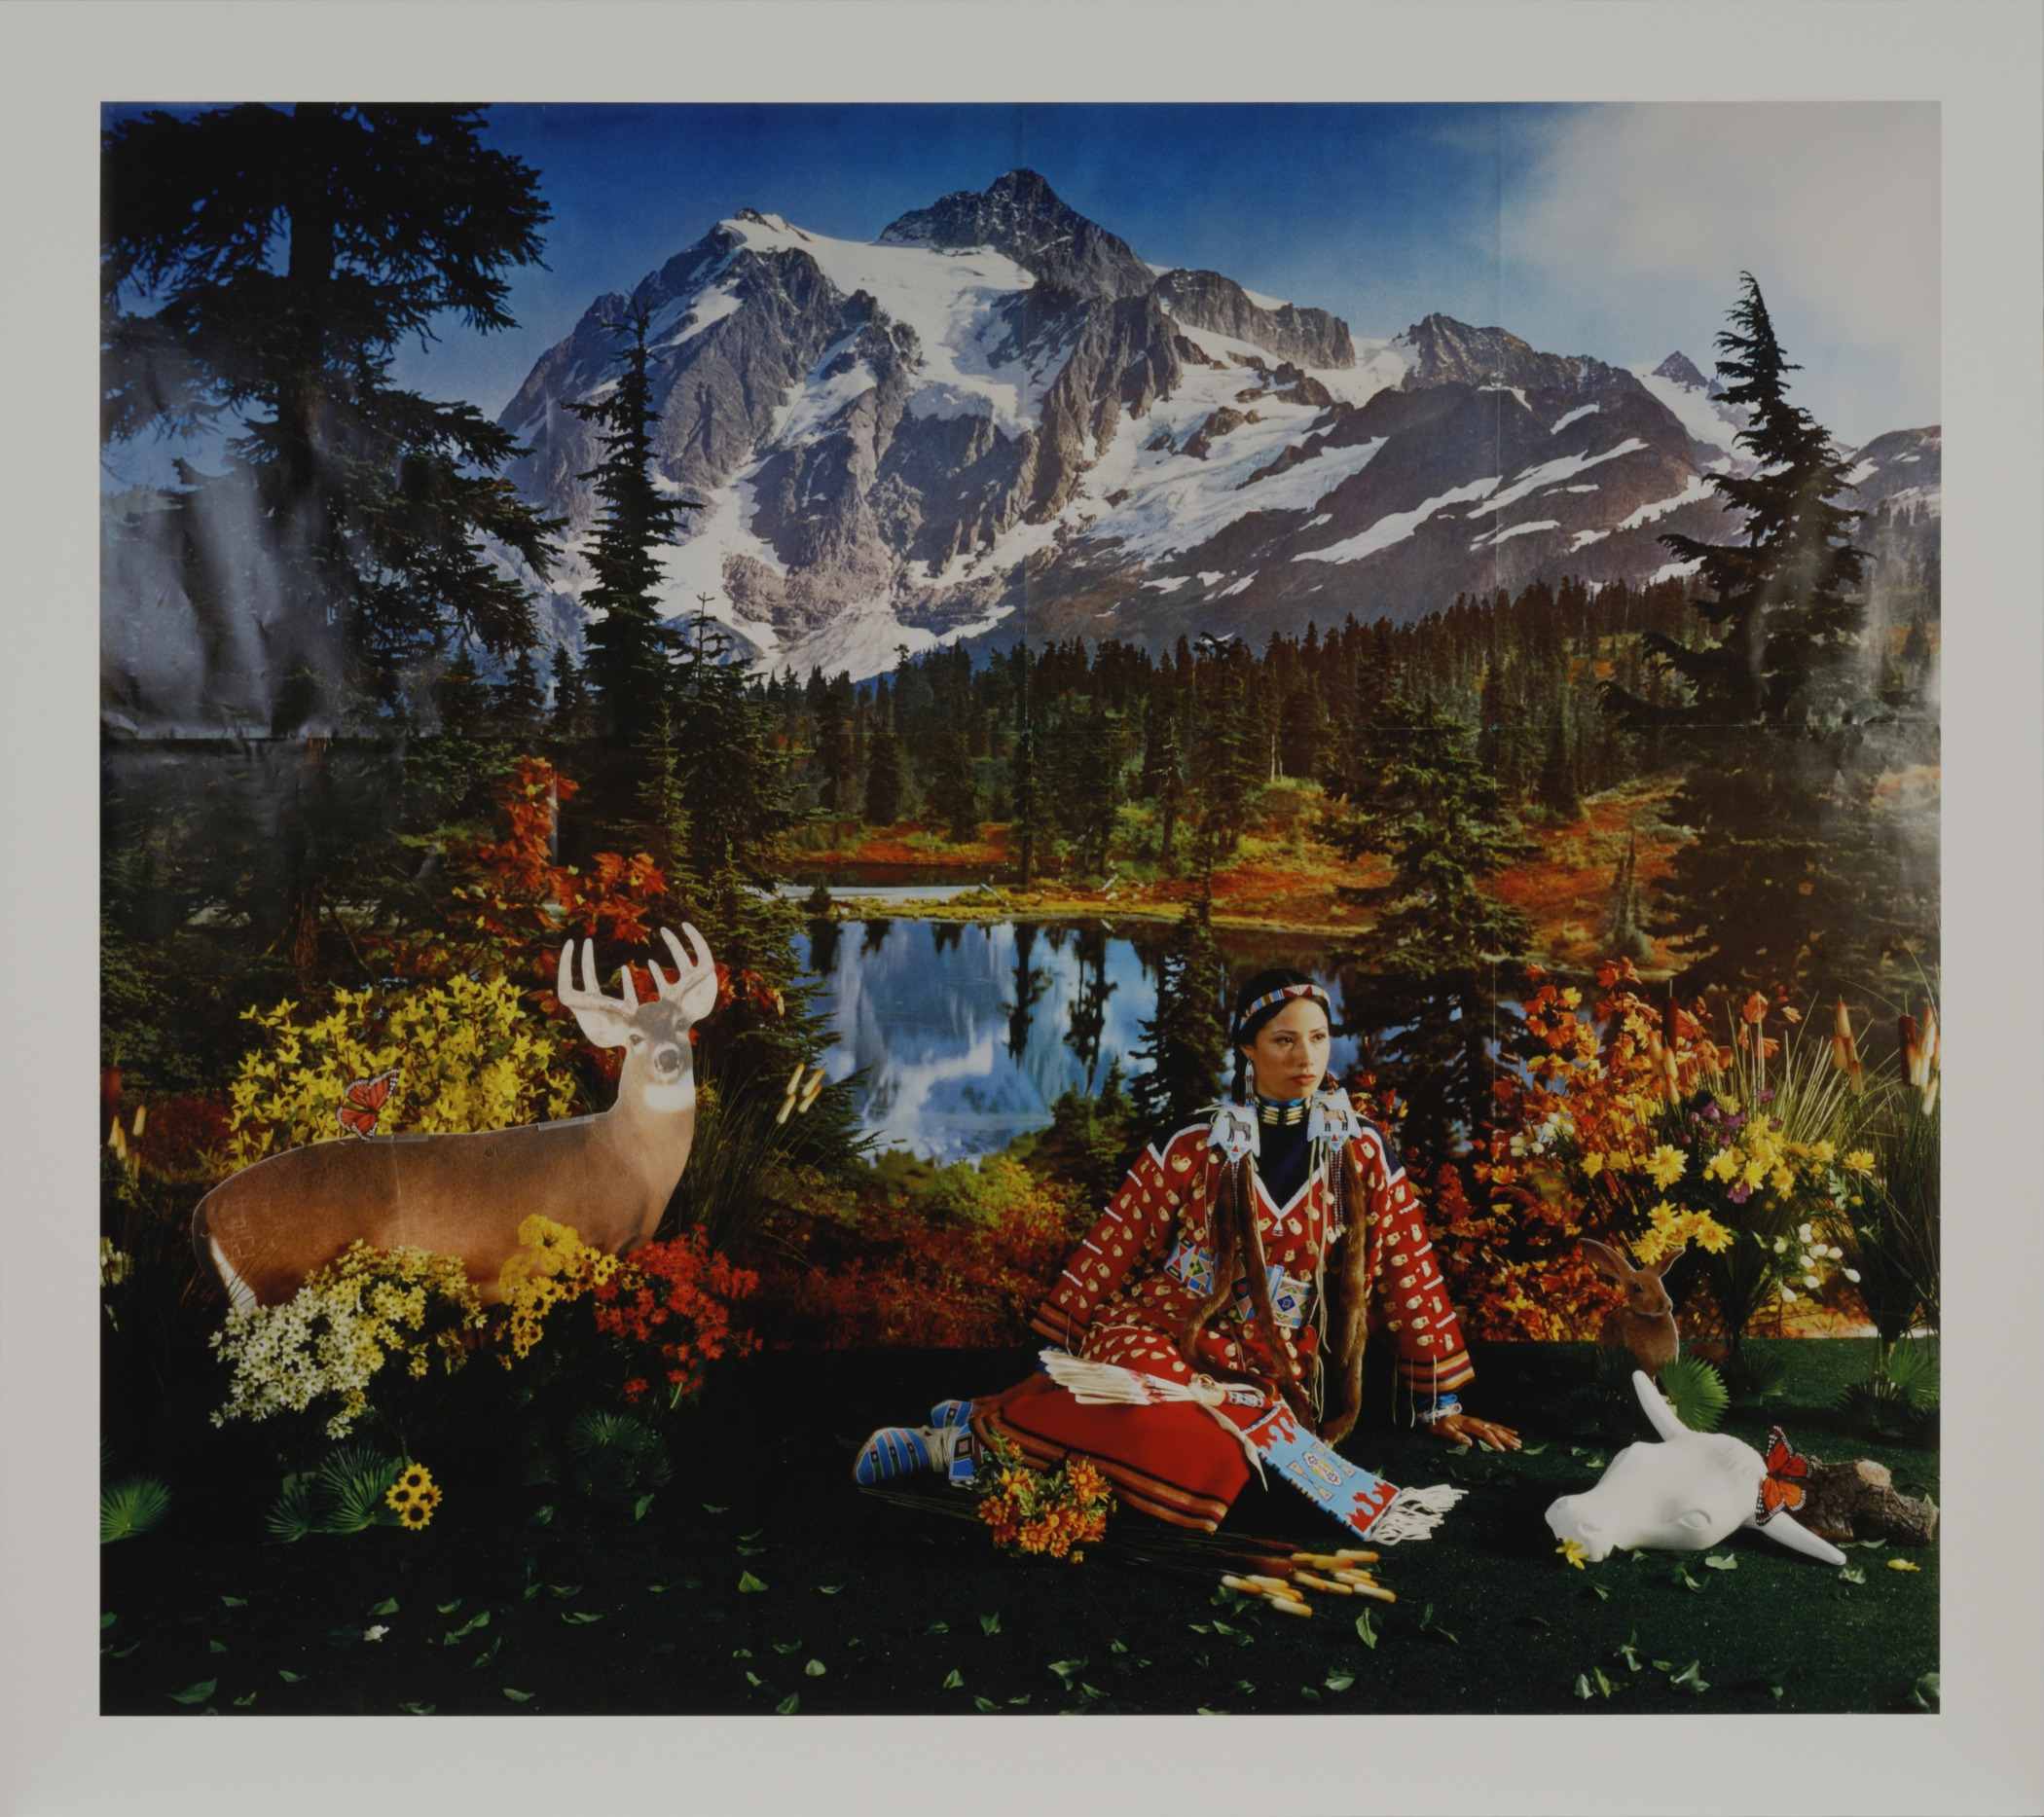 Wendy Red Star,  Summer , from  The Four Seasons  series, negative 2006; print July 1, 2014